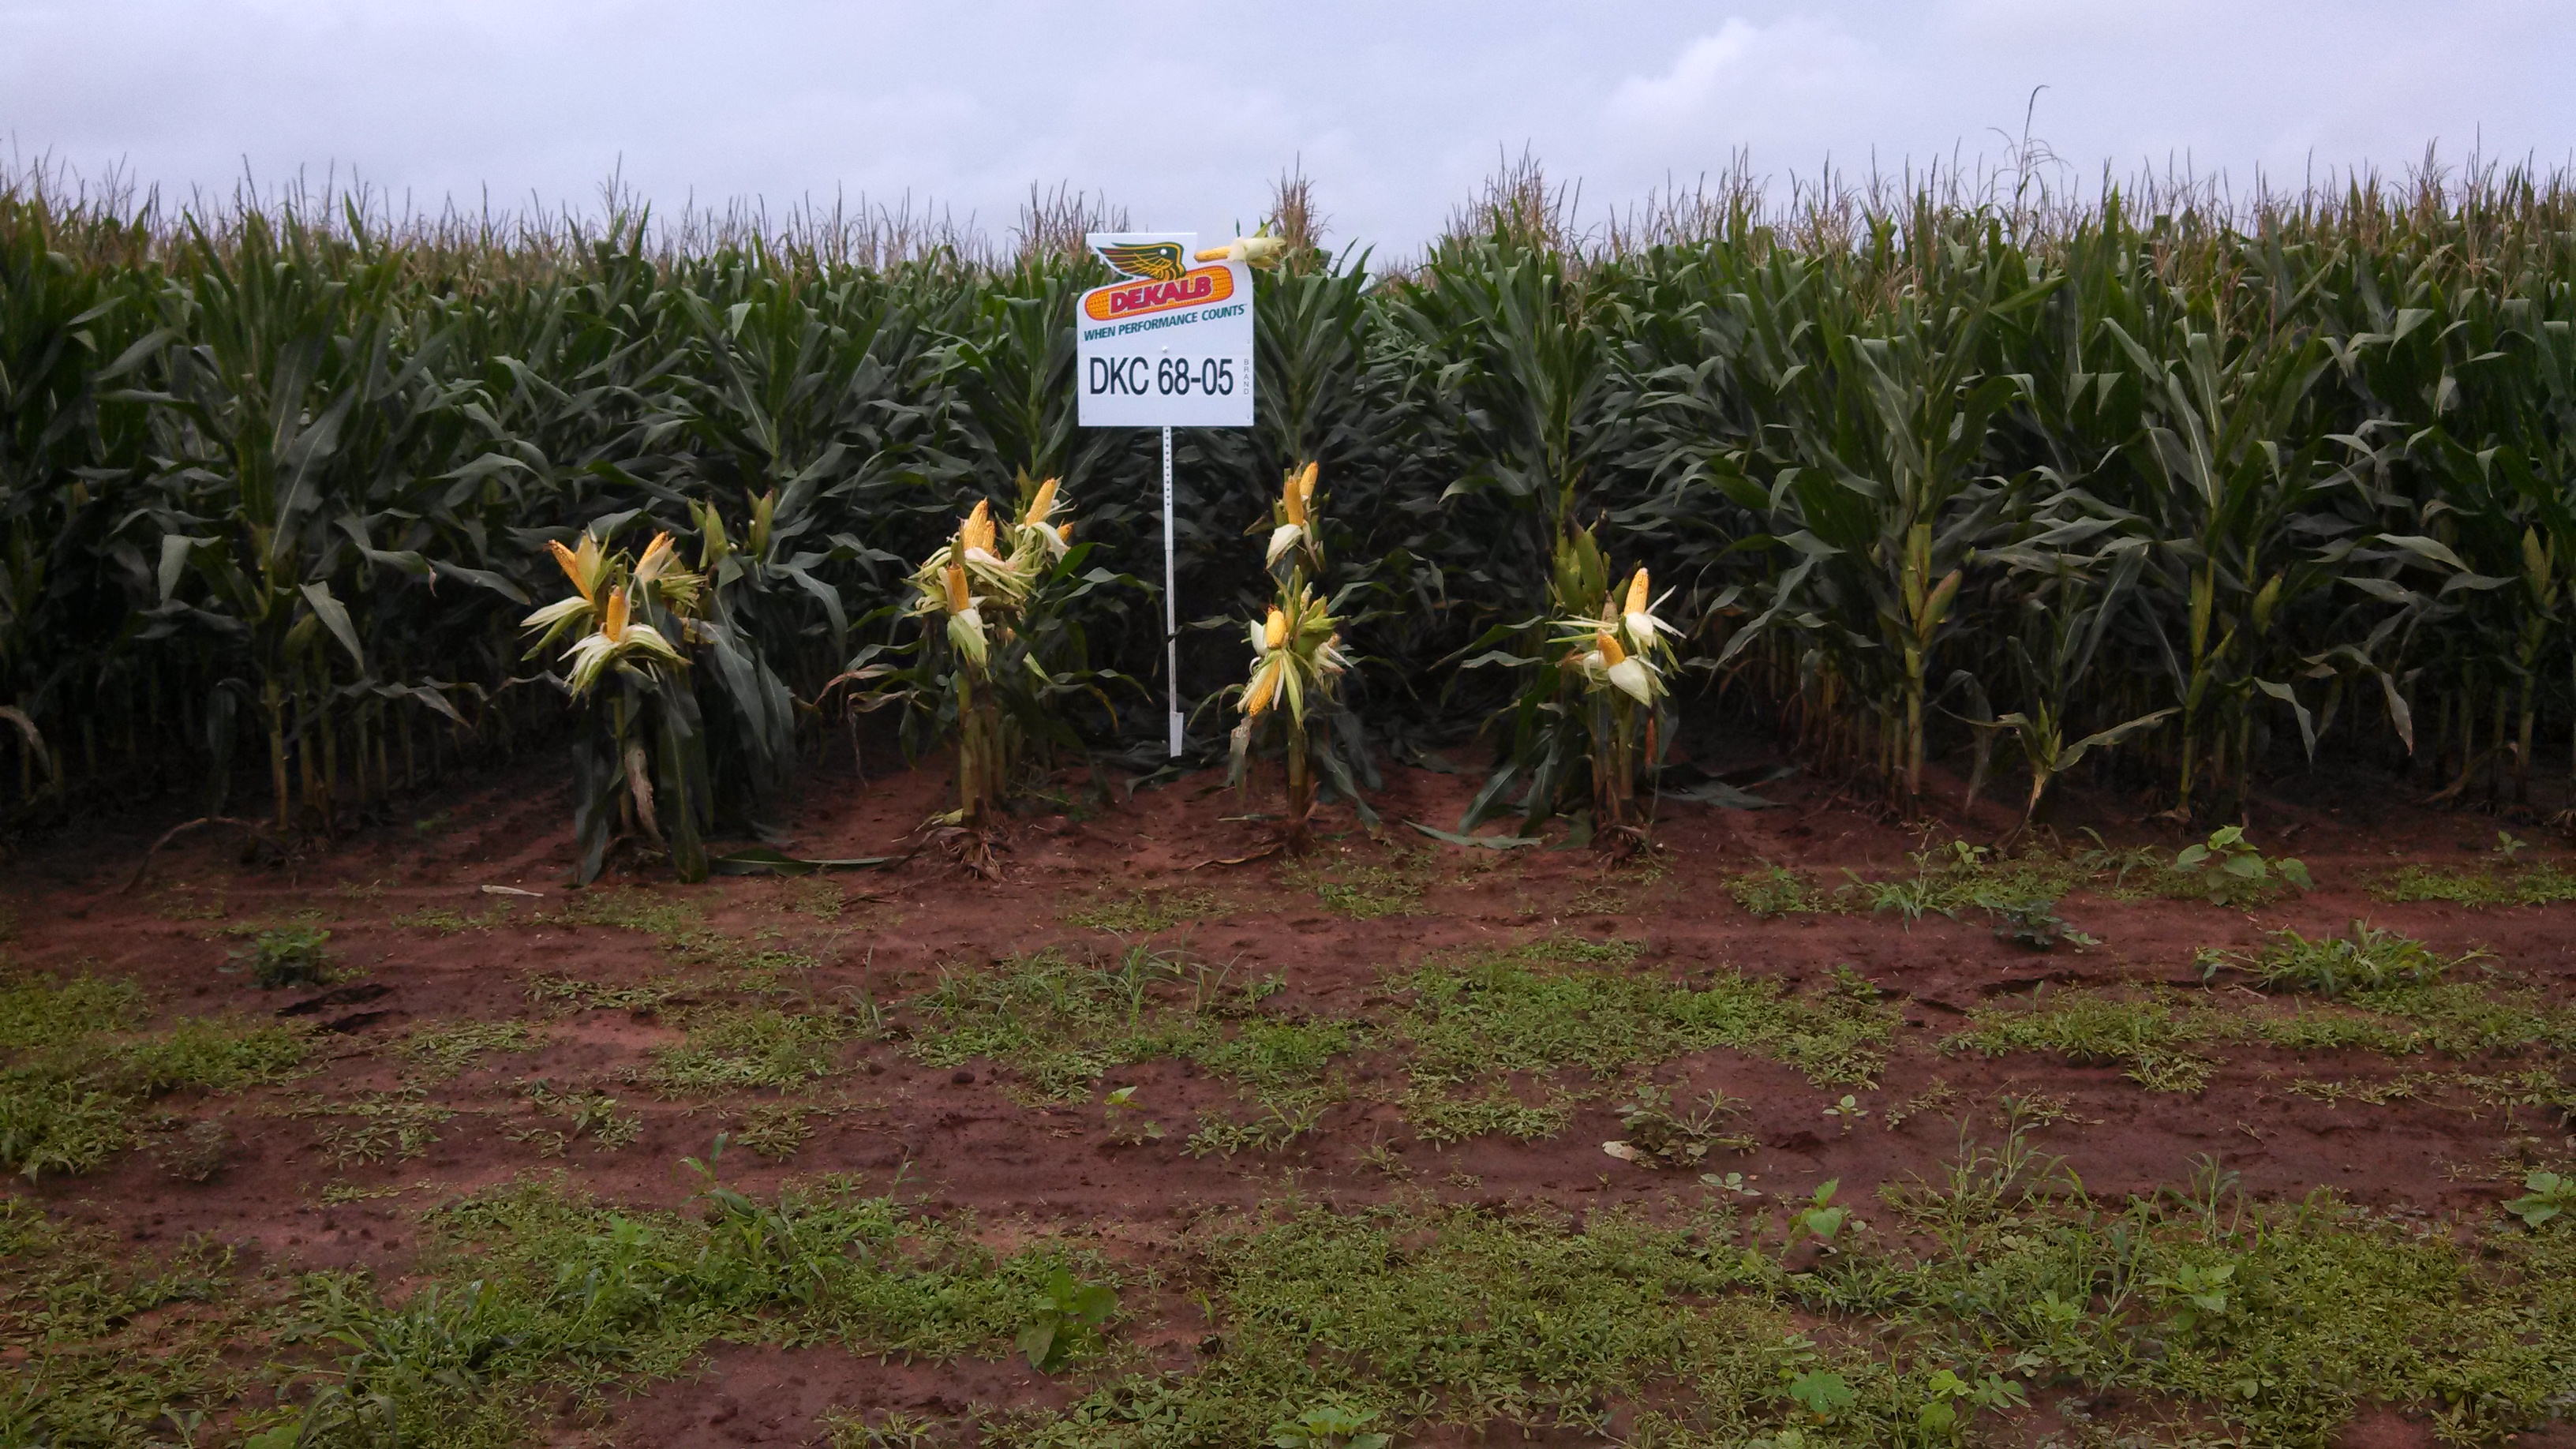 This corn variety is a GMO with traits for insect resistance and herbicide tolerance.